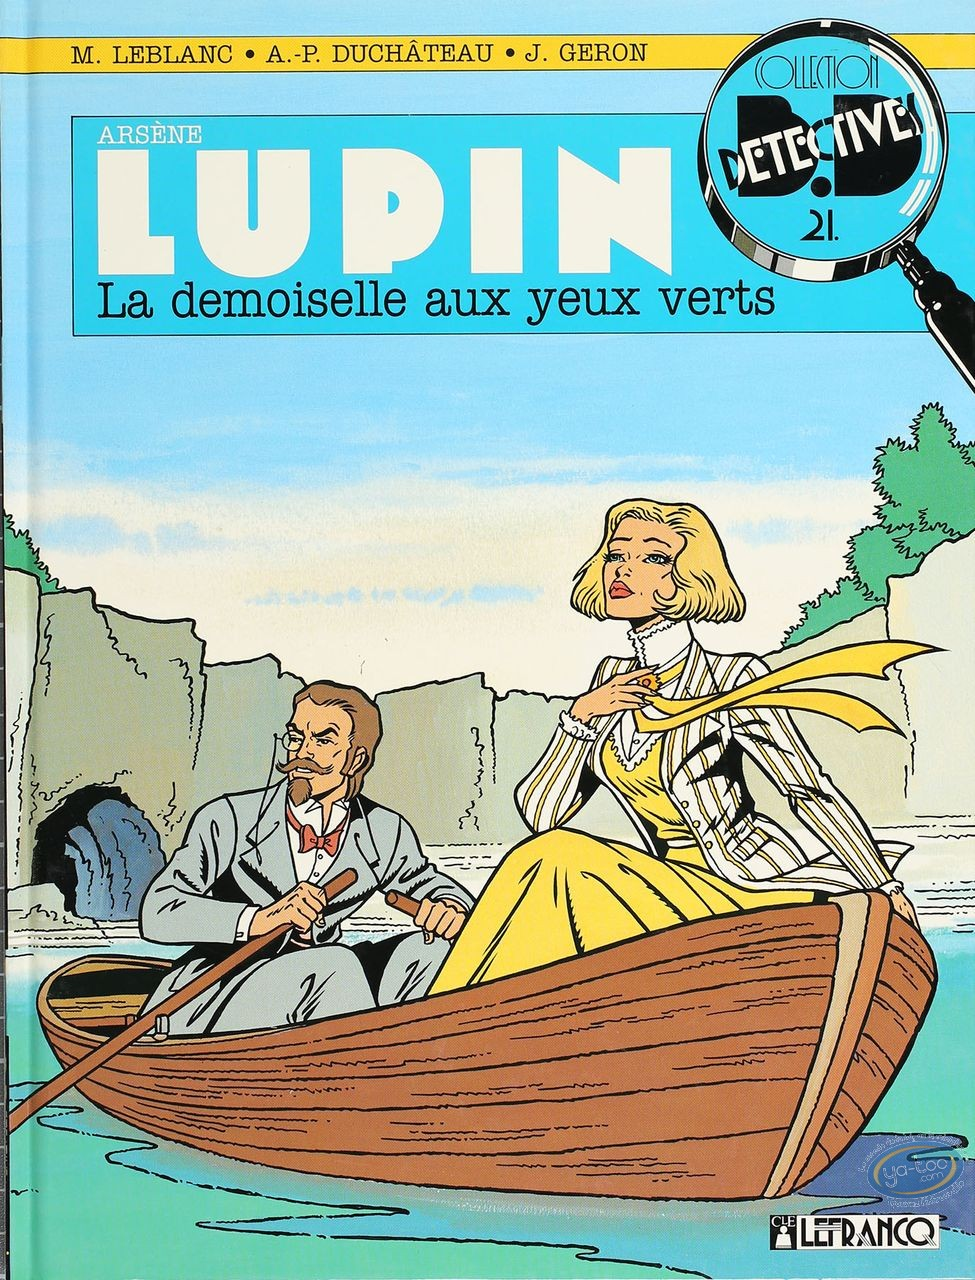 Listed European Comic Books, Arsène Lupin : La Demoiselle aux Yeux Verts (very good condition)